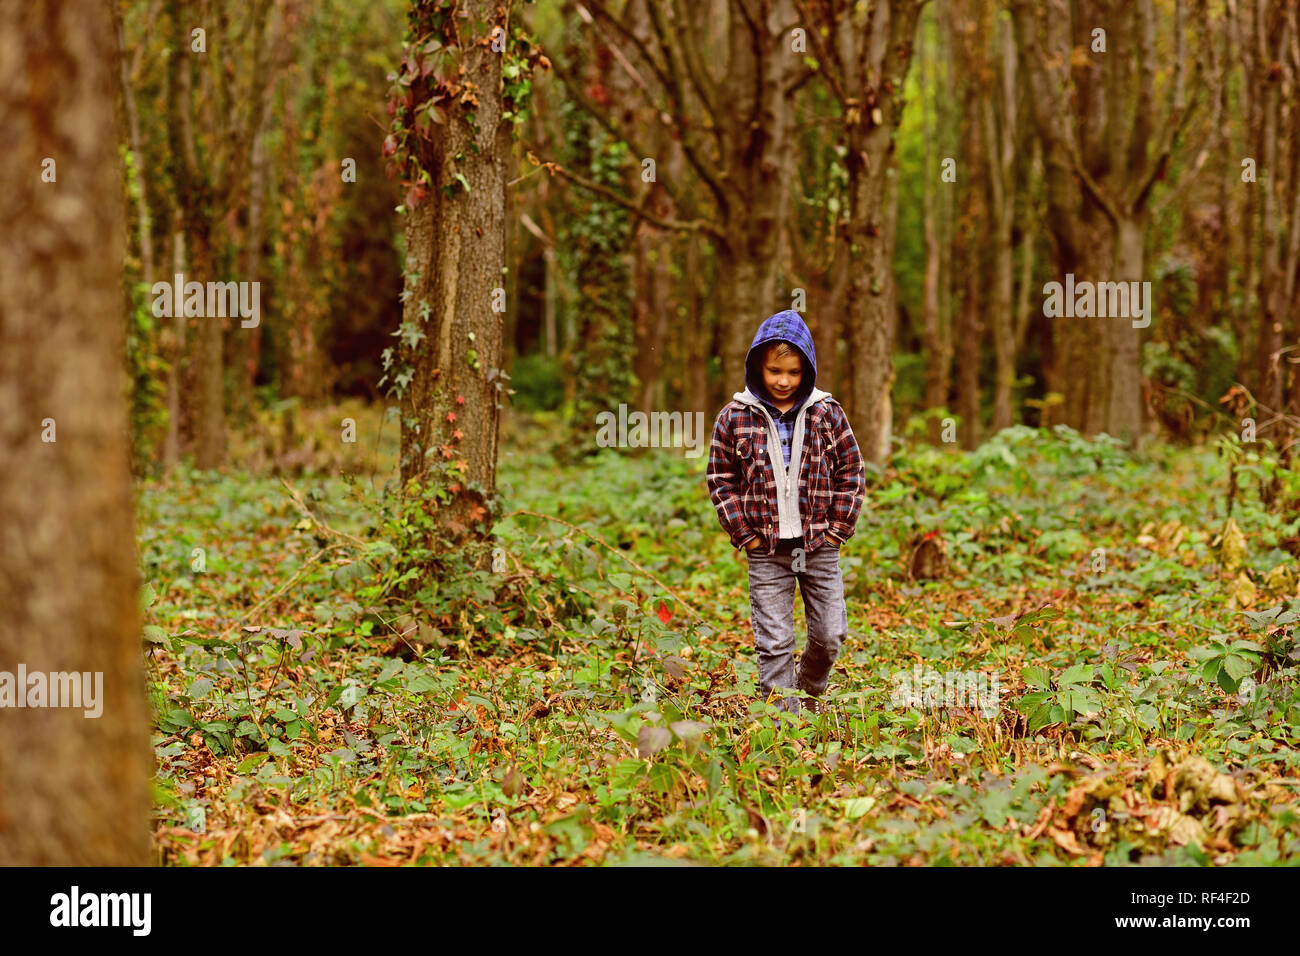 Homeless and abandoned. Homeless child walk in woods. Homeless boy without parental care outdoor. Street child has to seek homeless shelter and food. Homelessness among children is a serious issue - Stock Image